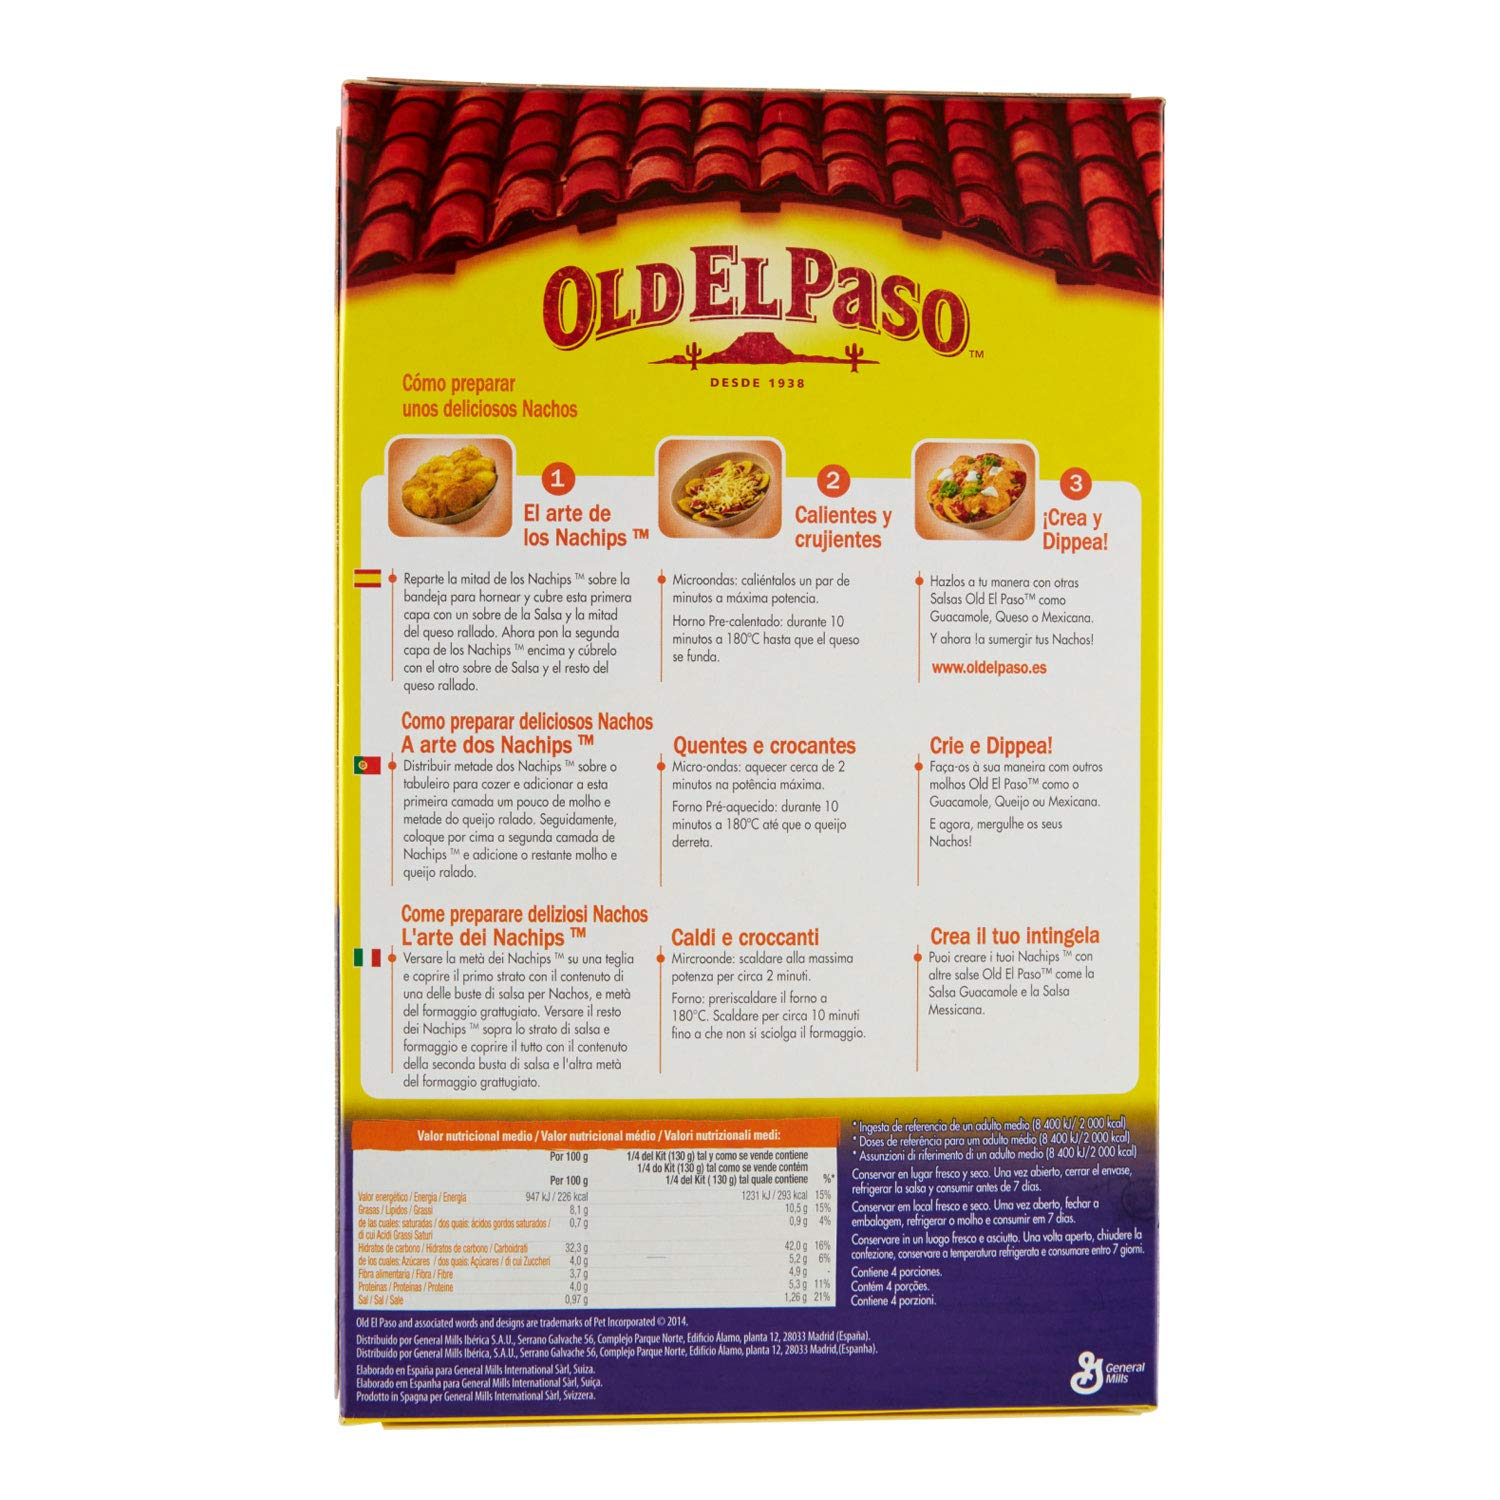 Amazon.com : Old El Paso - Original Nachos - 520g : Grocery & Gourmet Food